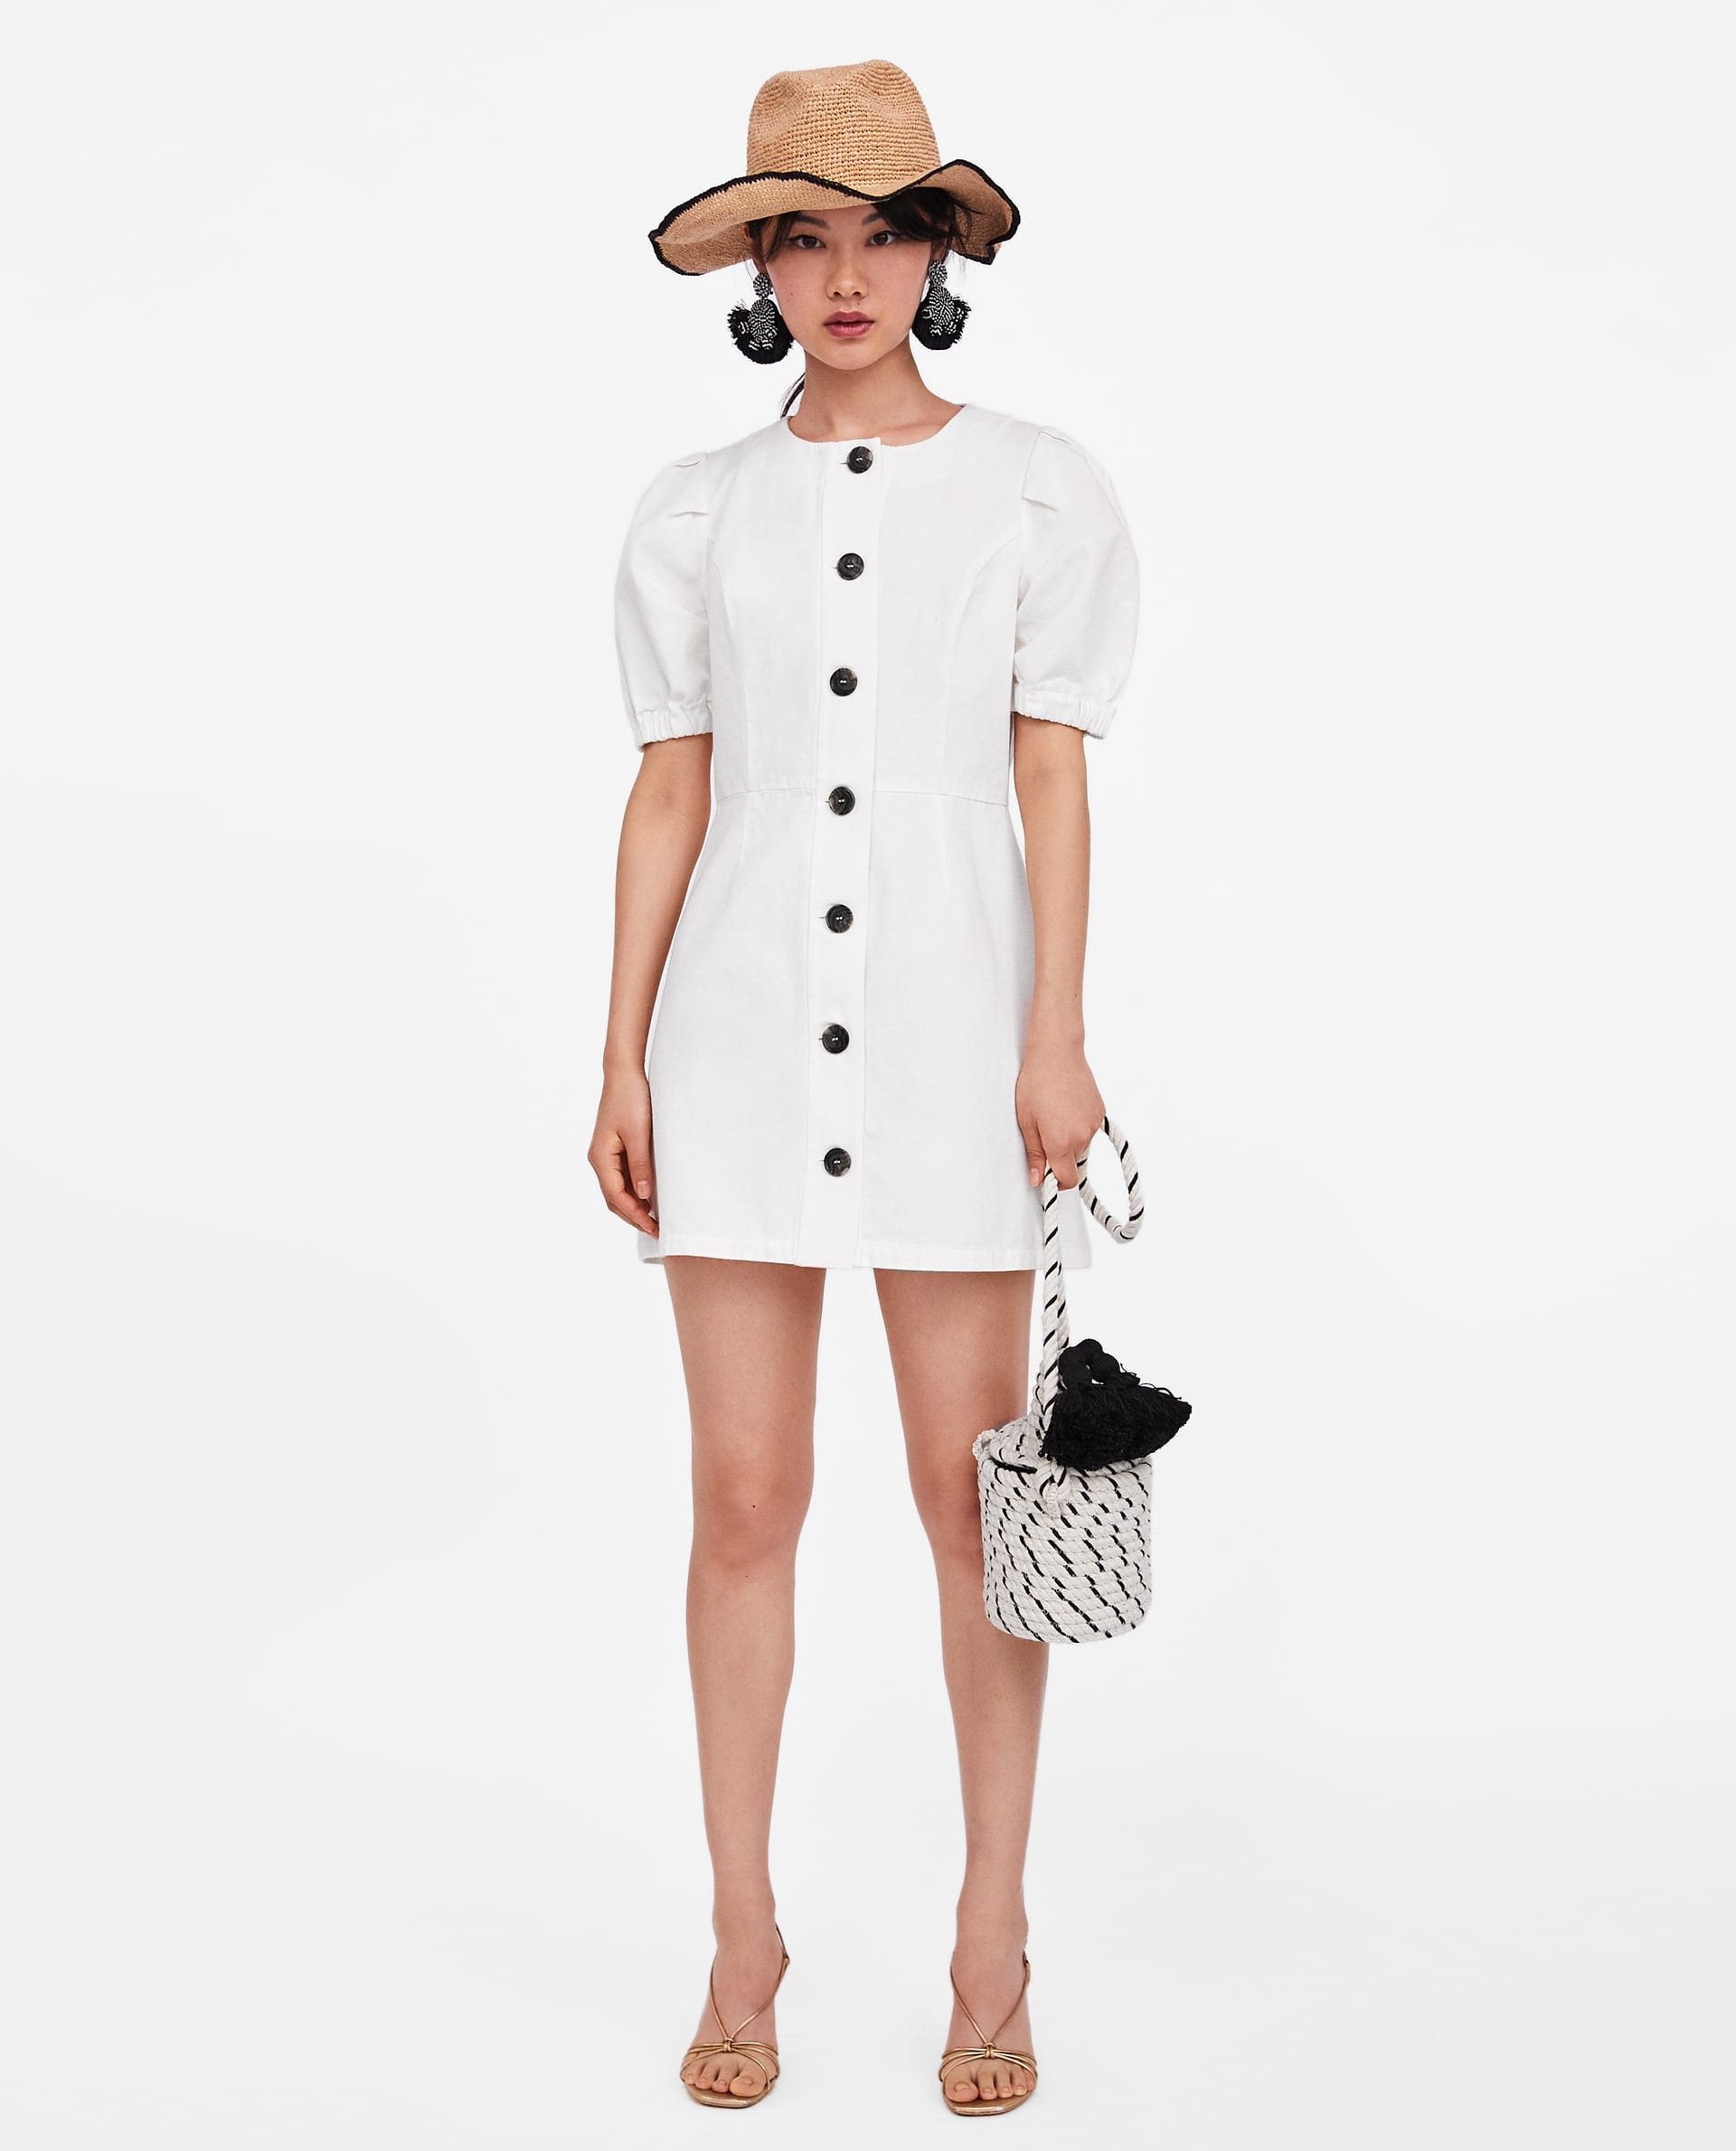 e3413cd9 Zara's New Spring Summer Arrivals Are A Holiday Dream